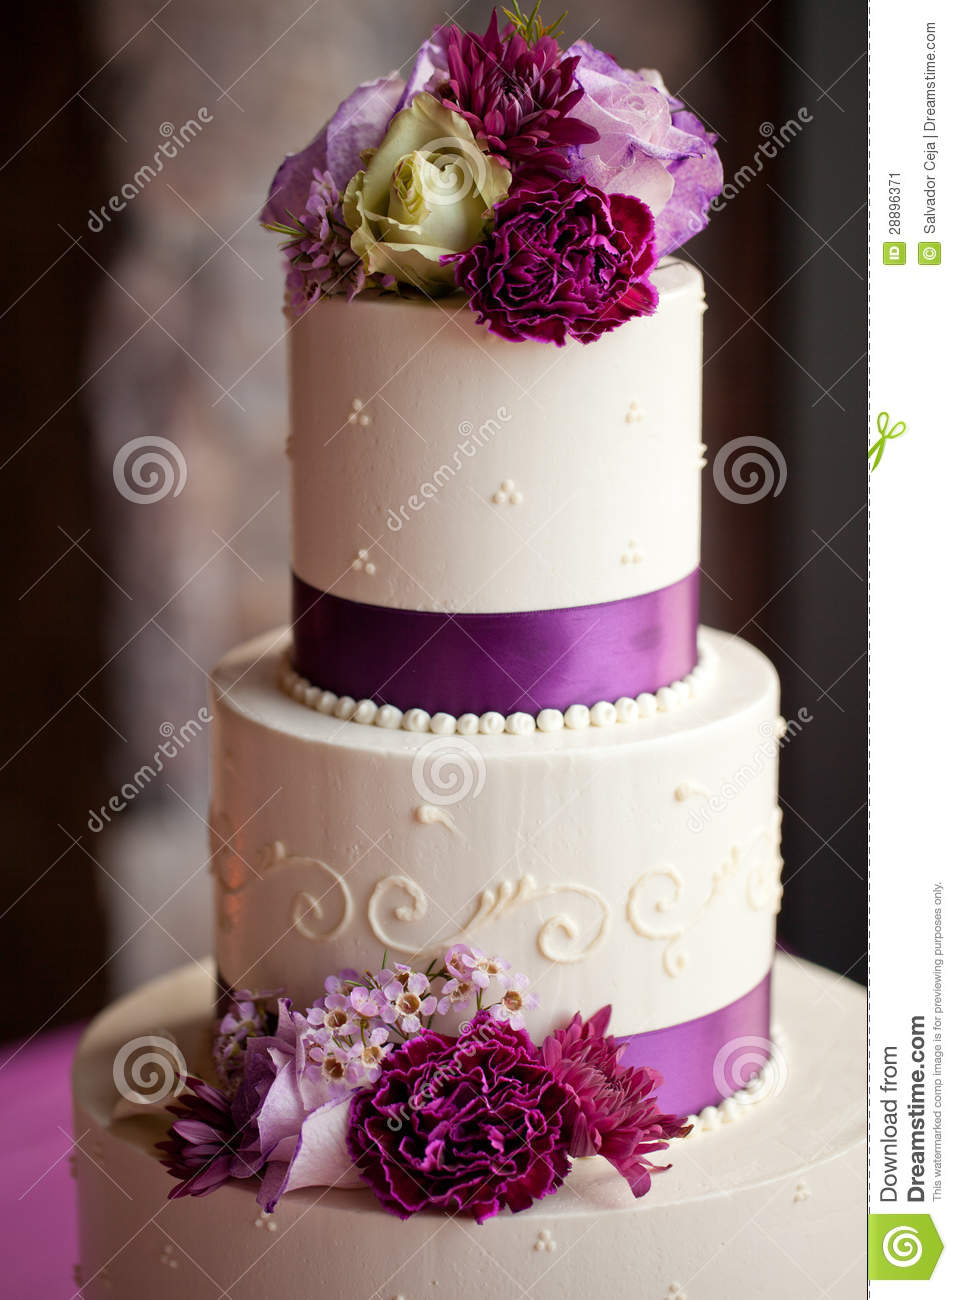 Wedding Cake With Flowers Stock Image Image 28896371